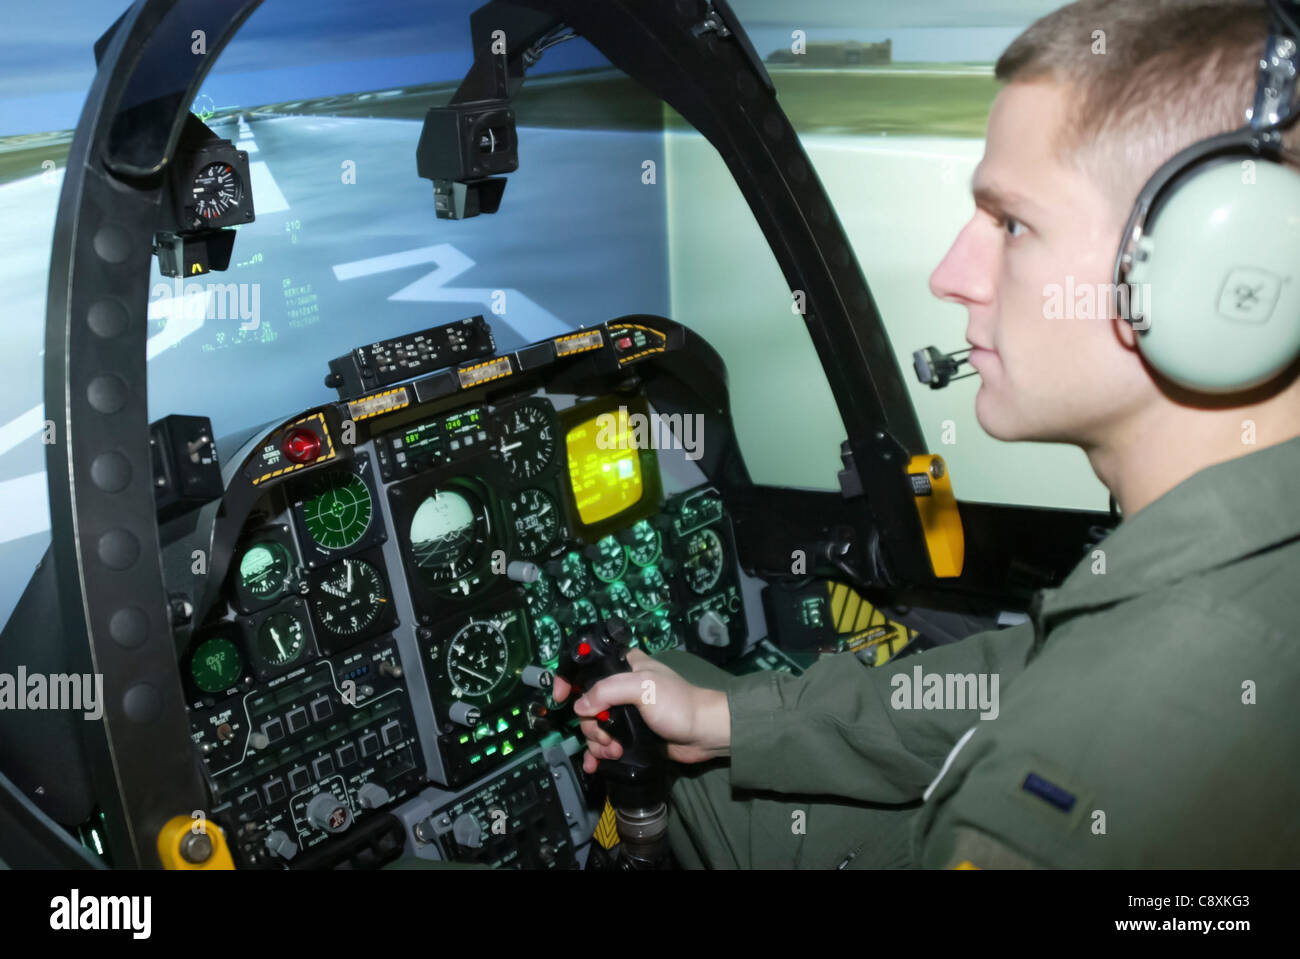 pope air force base n c 1st lt joden werlin settles into the